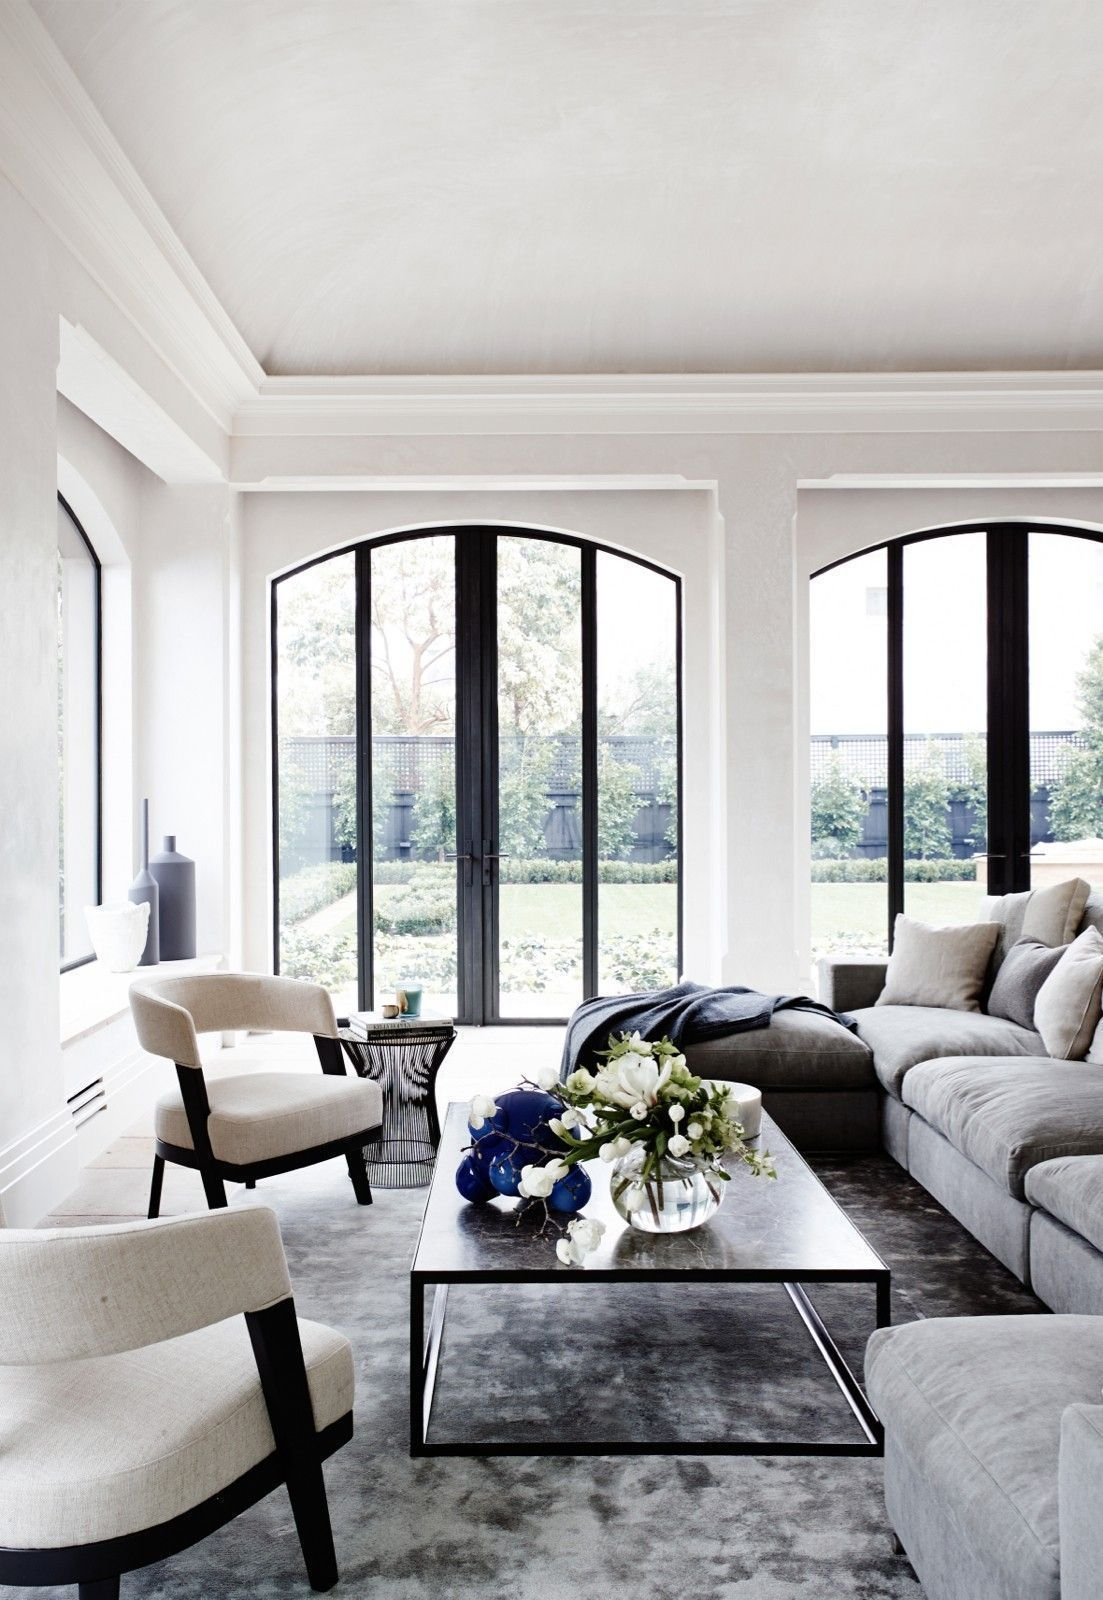 Decorative Living Room Modern Design Ideas On Irresistible Usa Contemporary Home Decor and Mid Century Modern Lighting On Living Room Modern Design Ideas